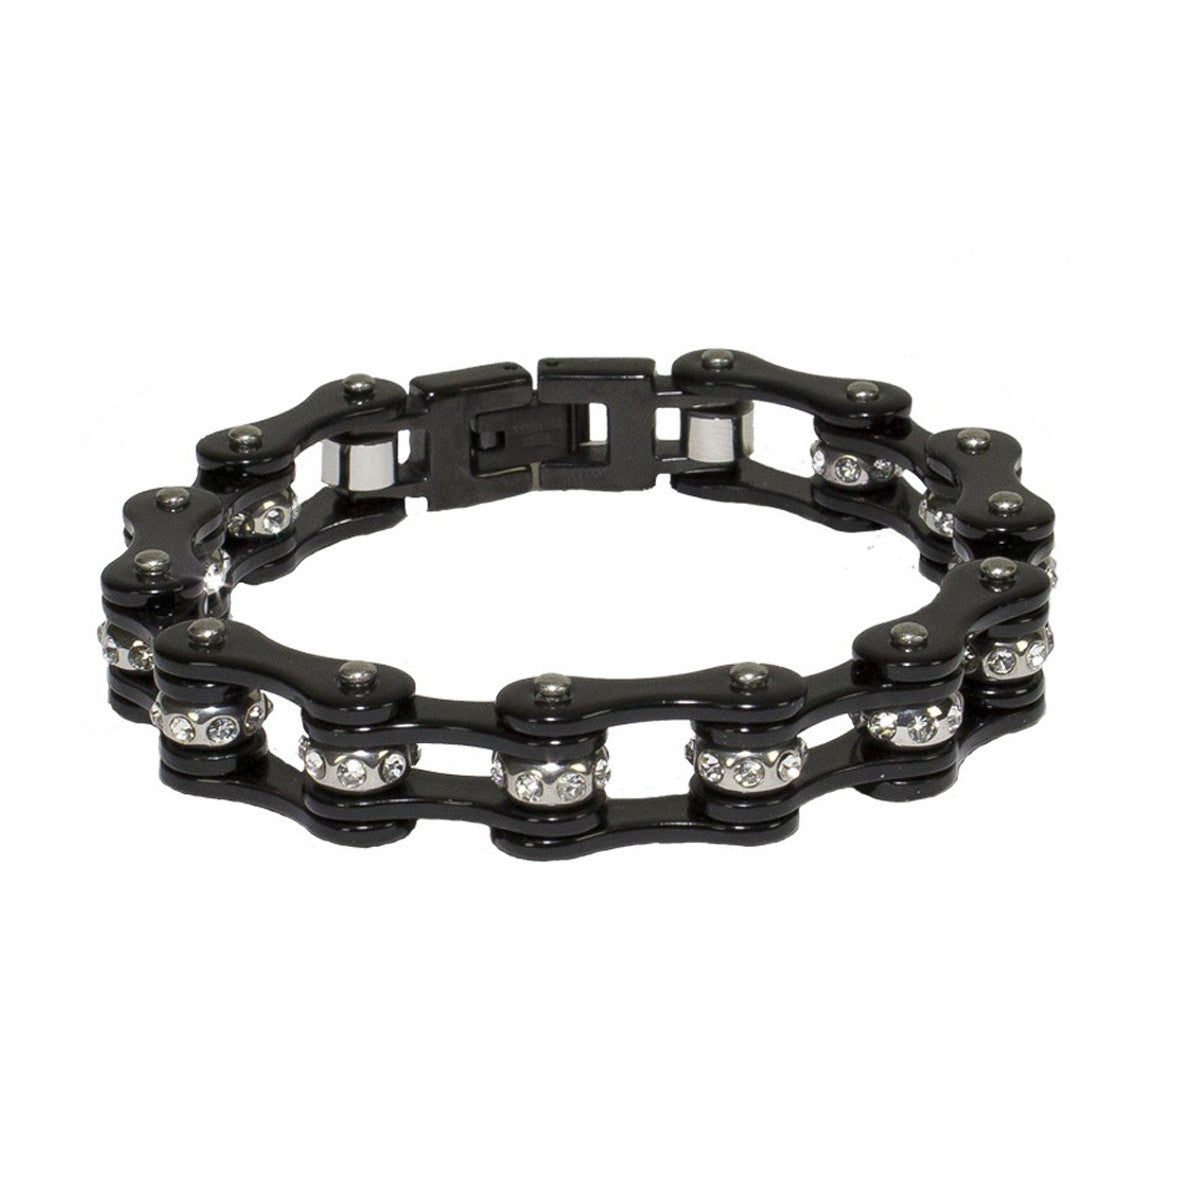 Black Motorcycle Chain Bracelet With Crystals